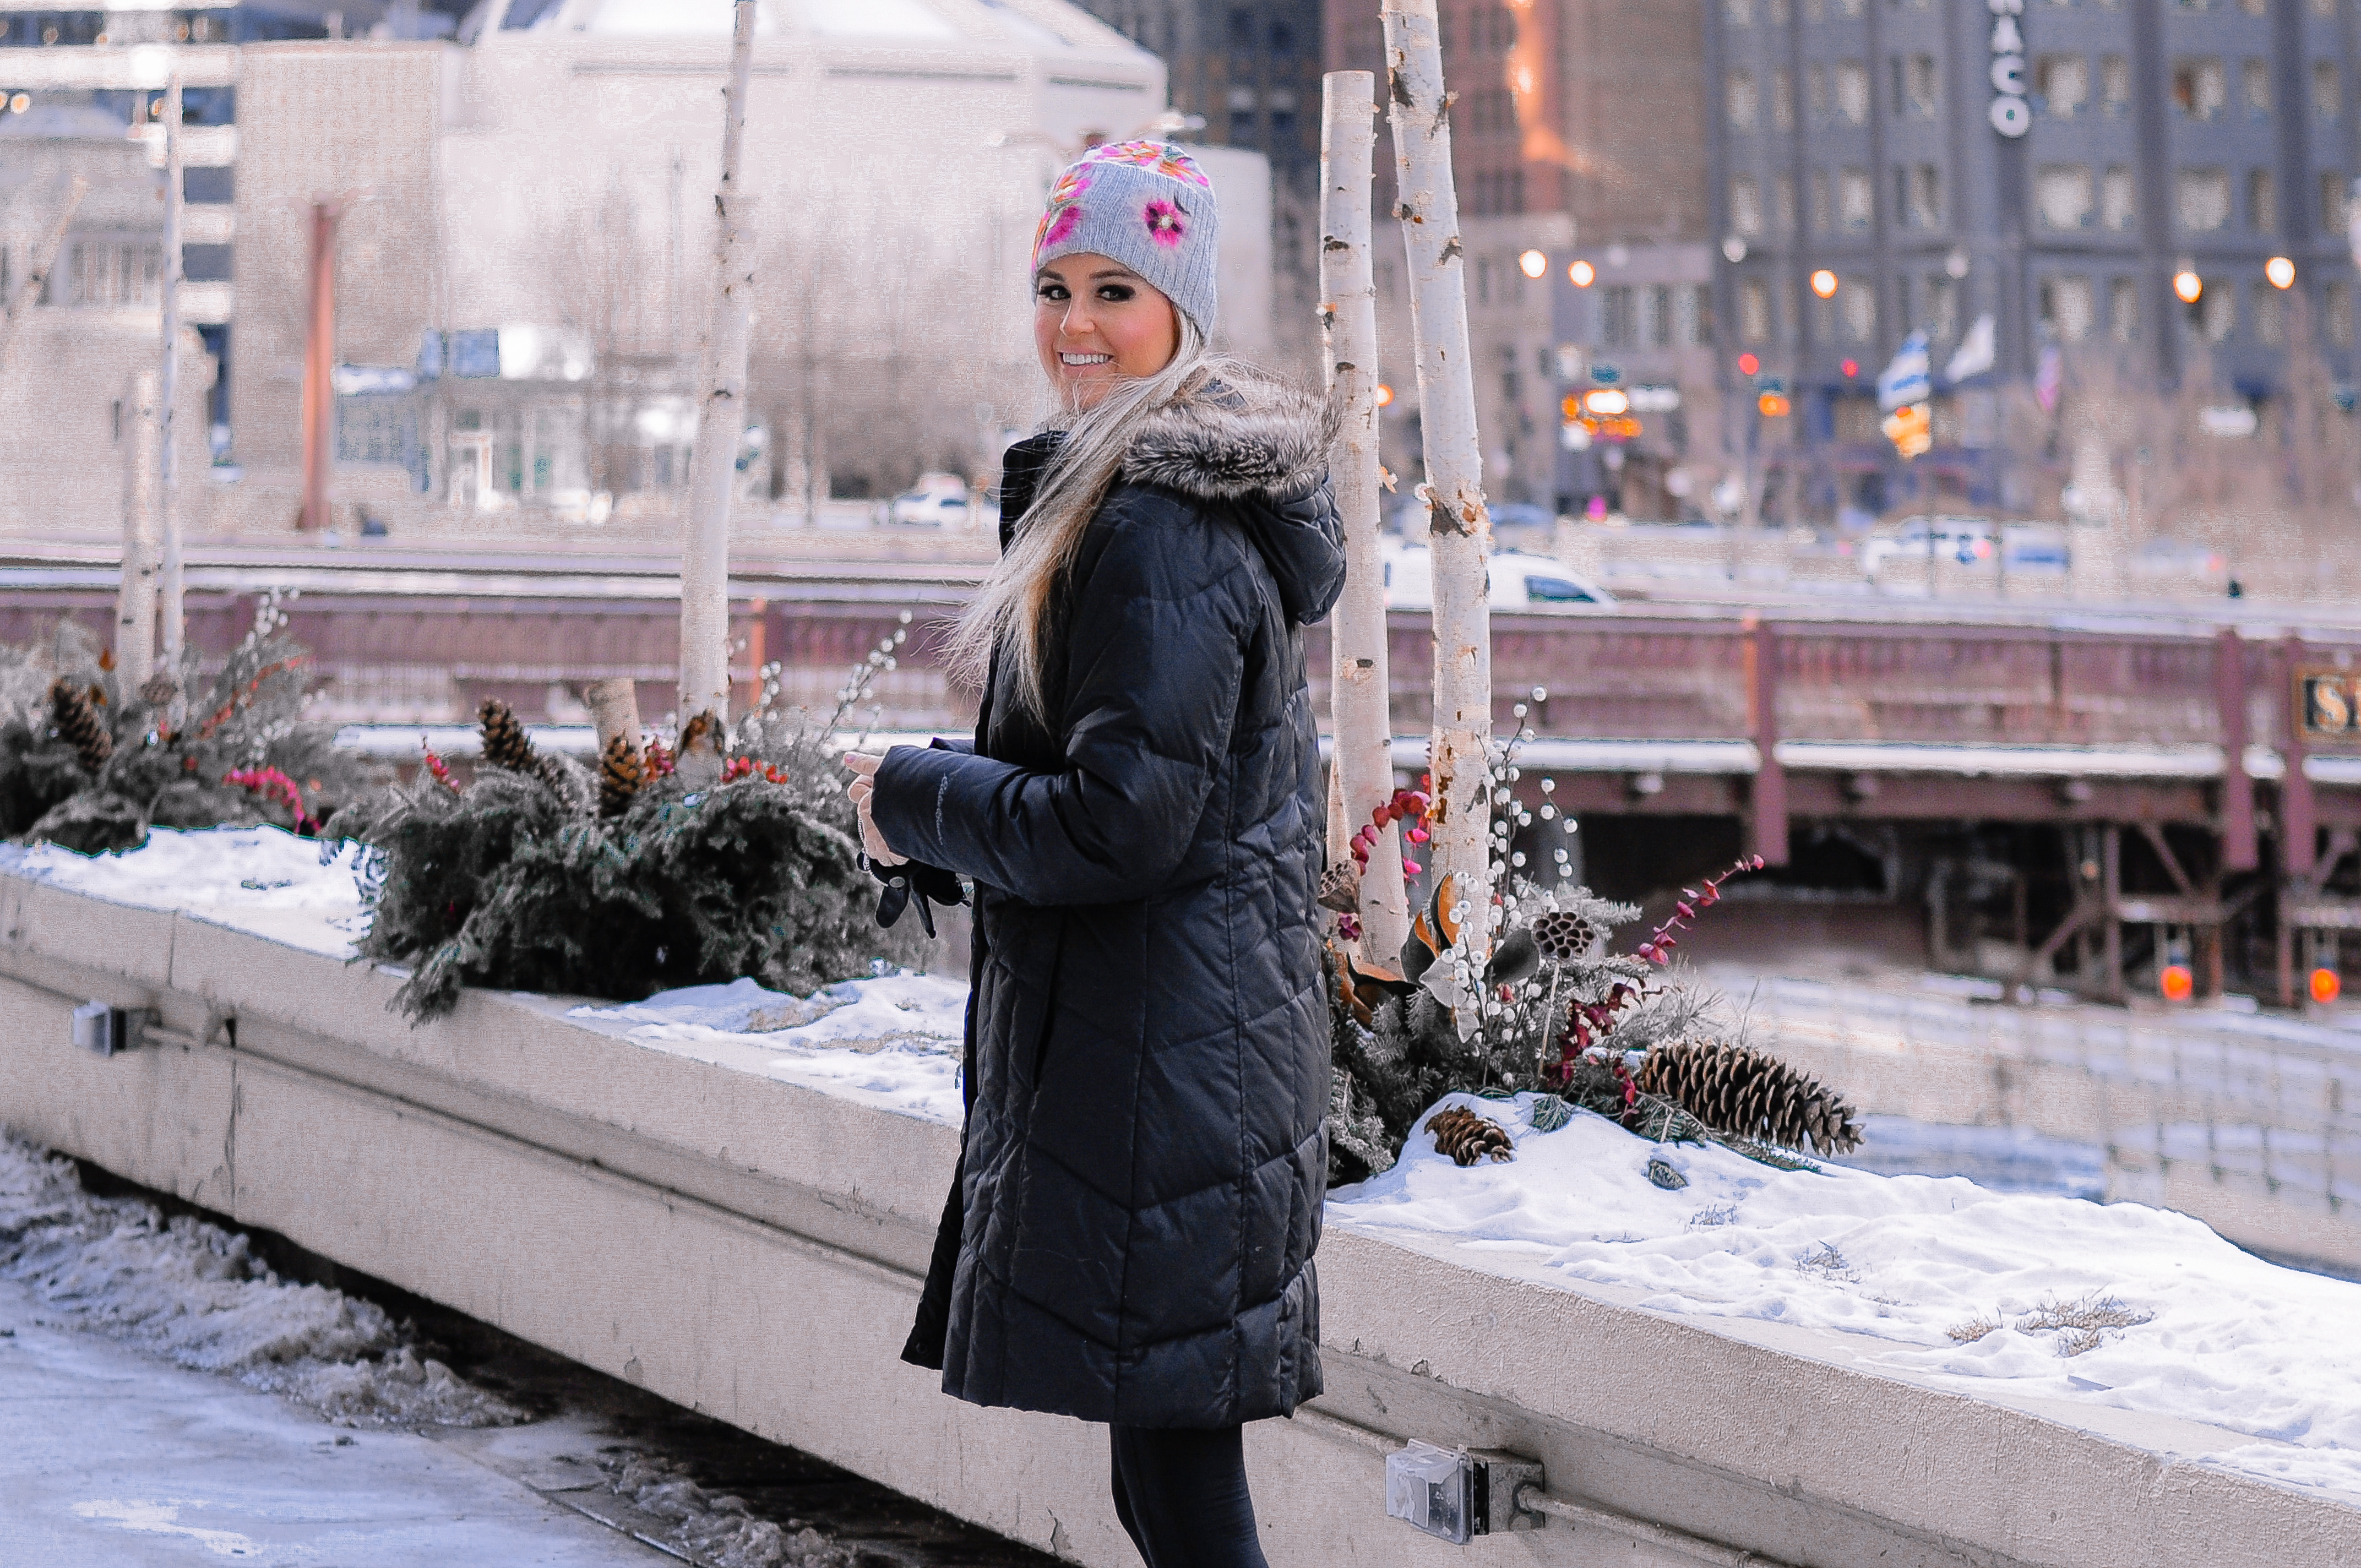 Stephany Bowman wearing an Eddie Bauer down filled winter coat in Black with Black UGG boots, and an Antrhopologie beanie in baby blue with pink flower detail, Lulu lemon leggings